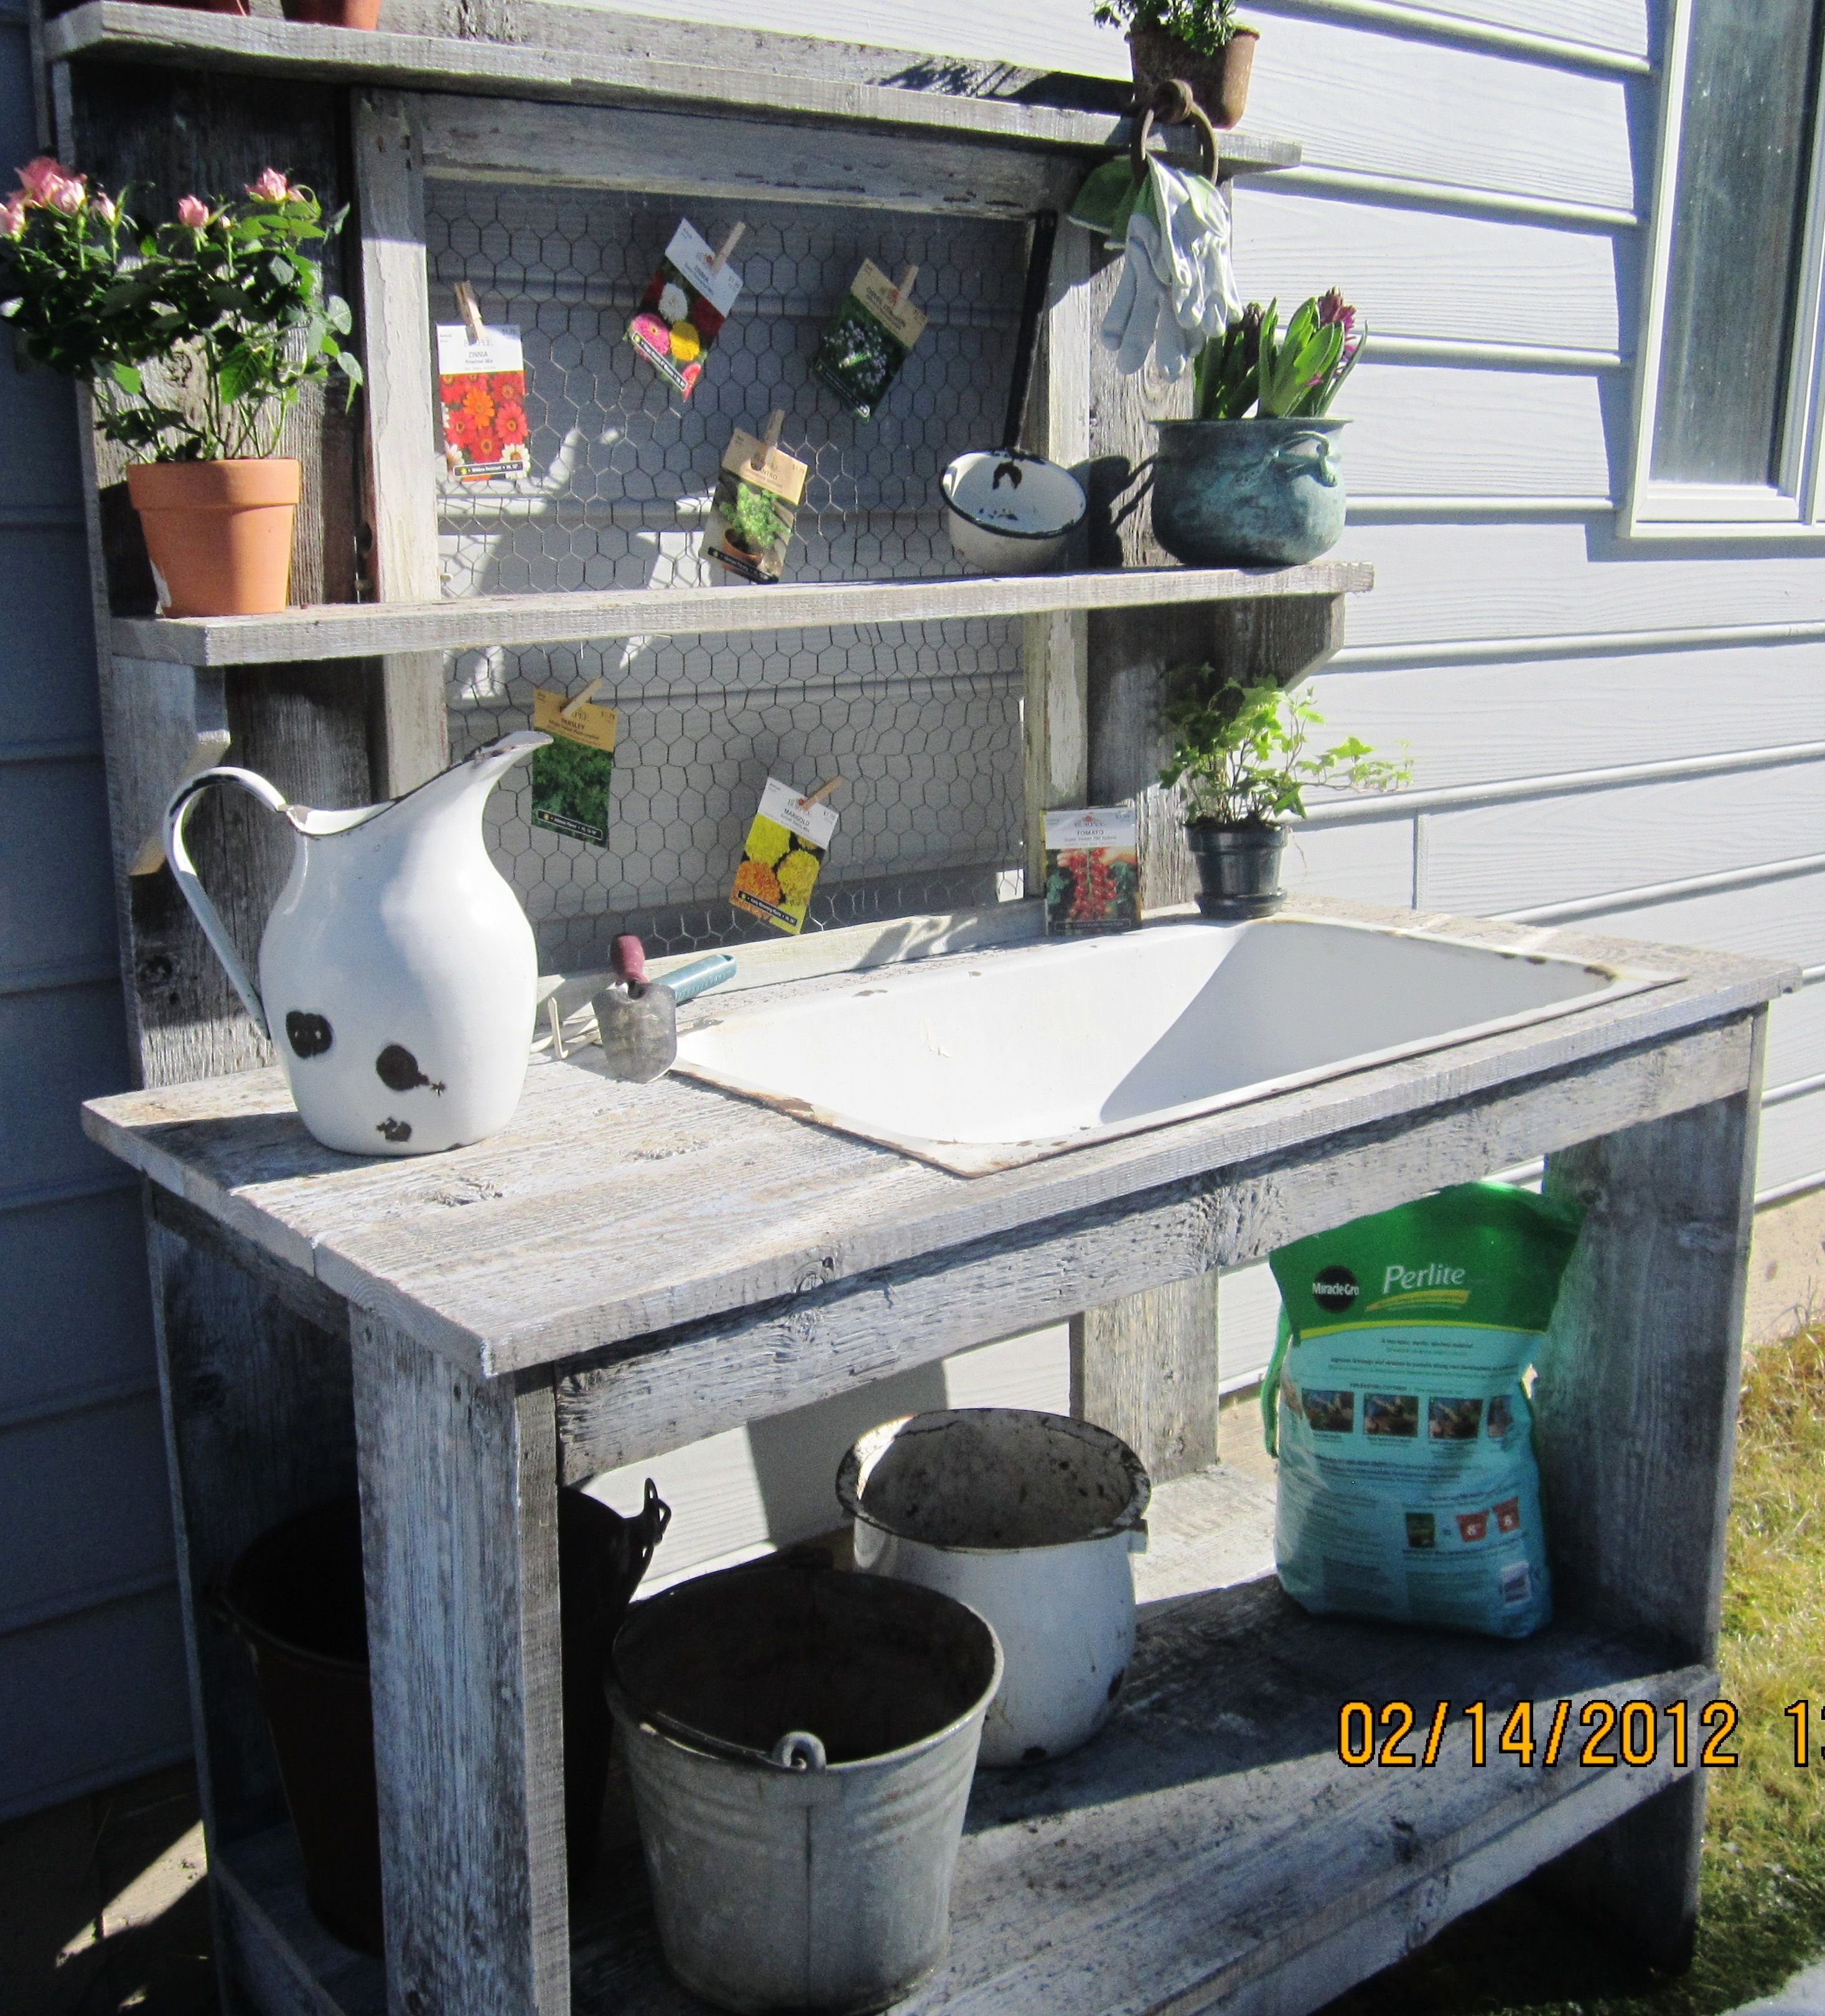 Lakewood 3 Person Swing, Pin By Guylaine Forbes On A Faire Potting Bench With Sink Outdoor Potting Bench Potting Bench